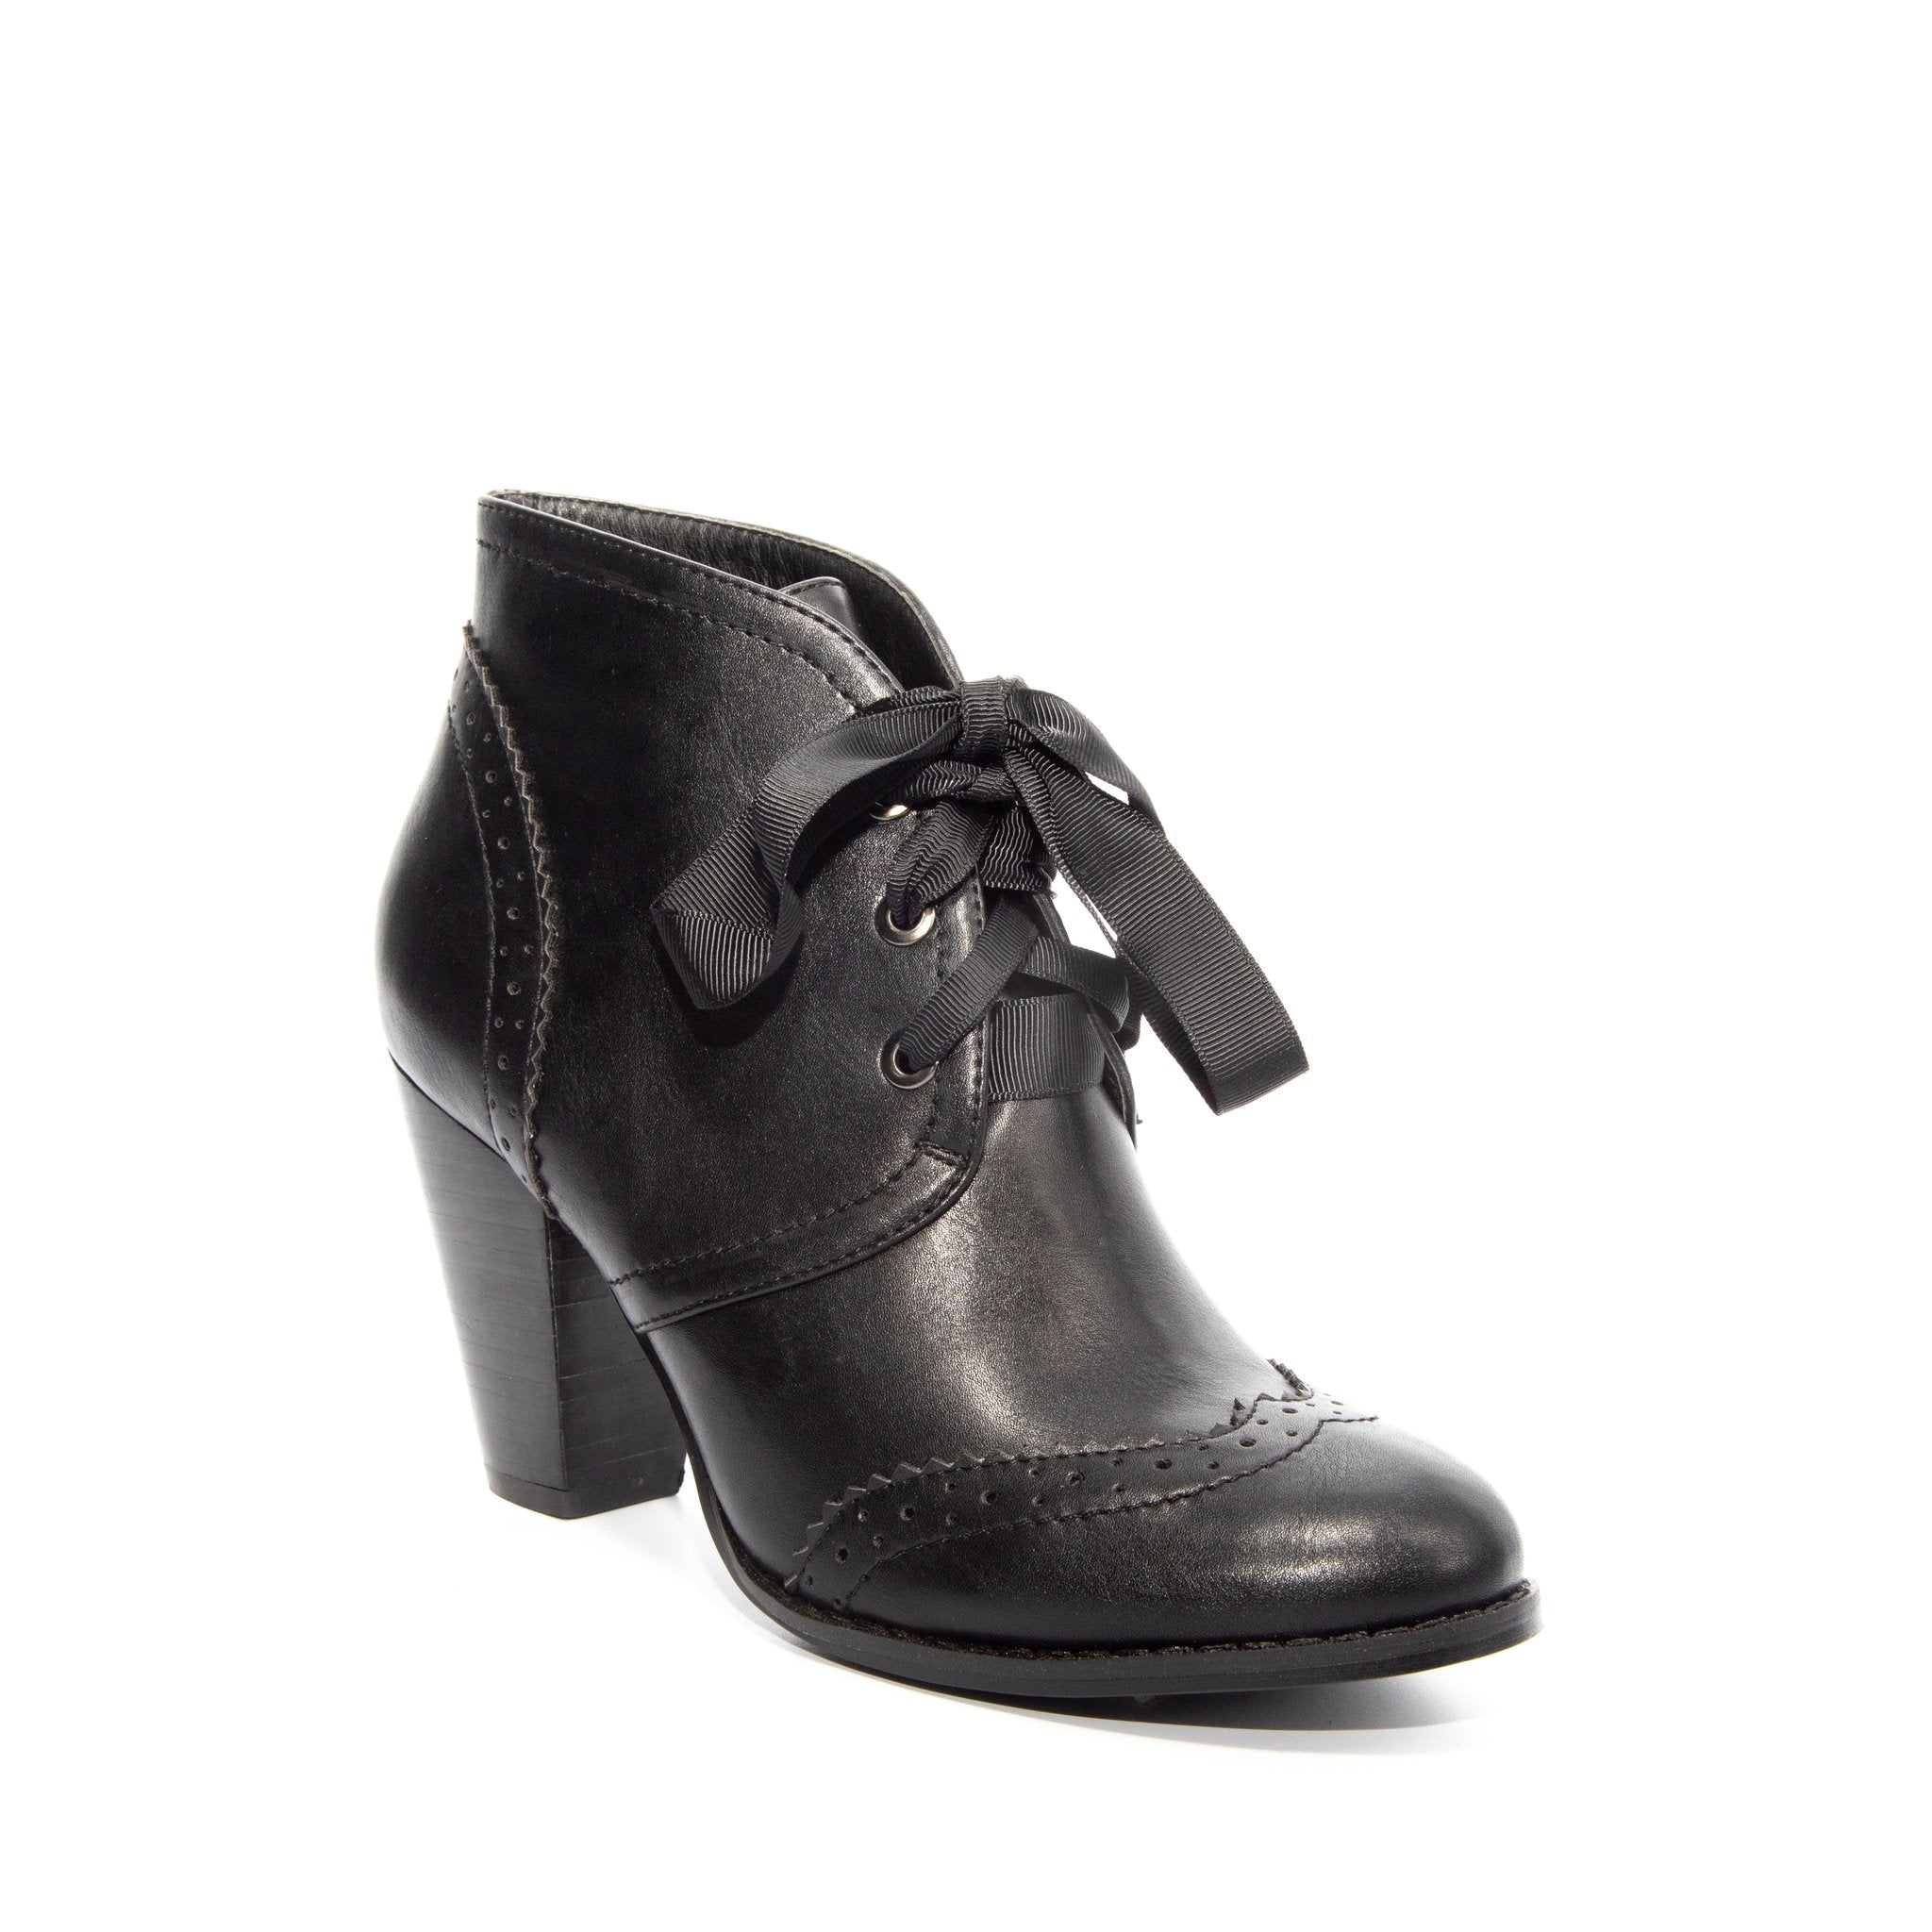 Melanie by Dolce Nome | Lace-Up Ankle Boots in Black (main view)